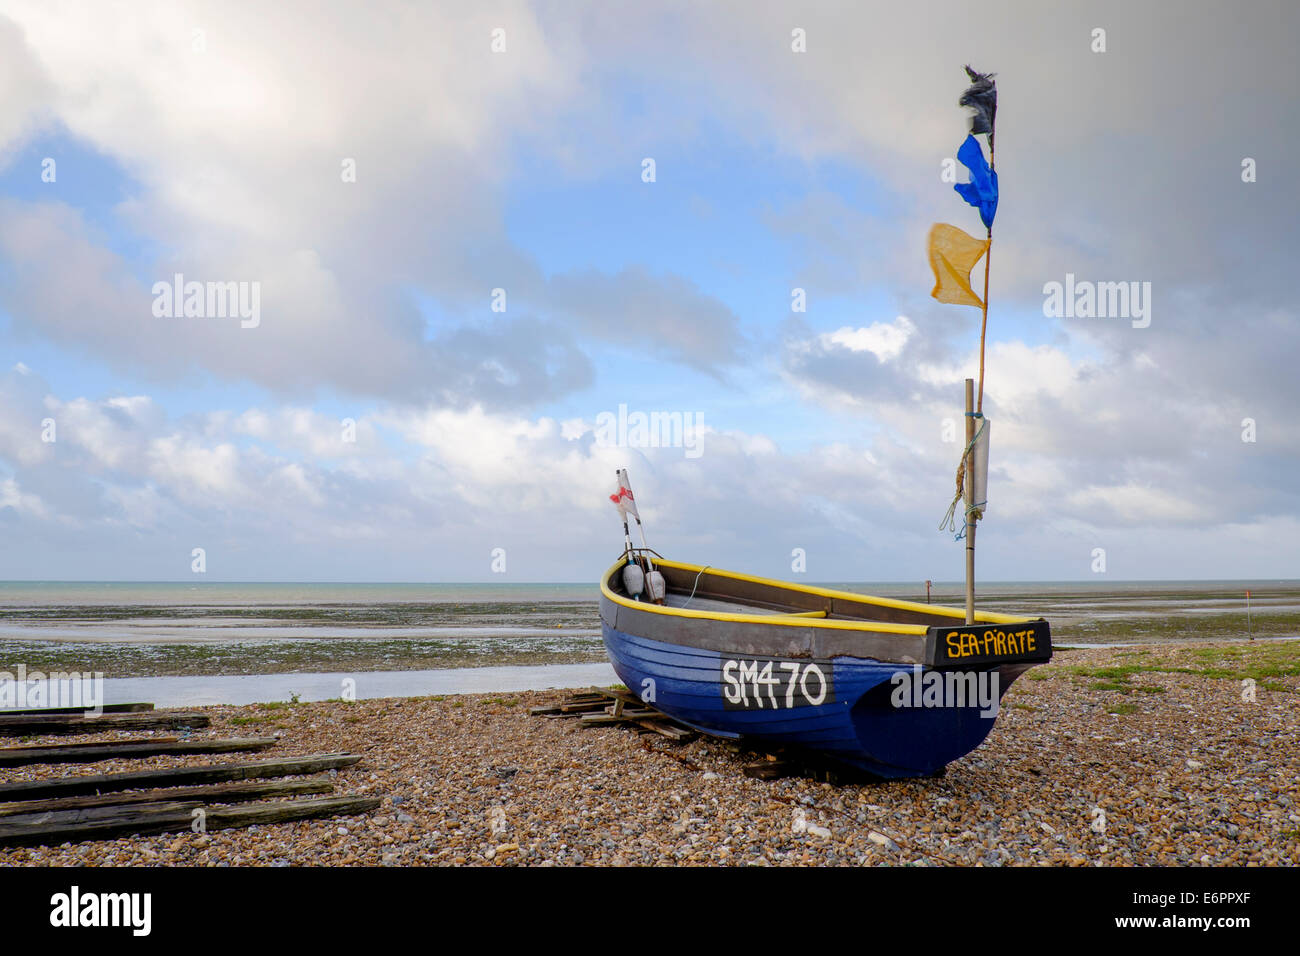 Goring By Sea, West Sussex, UK. 29th August, 2014. UK weather. Goring By Sea starts it's day warm and breezy. - Stock Image